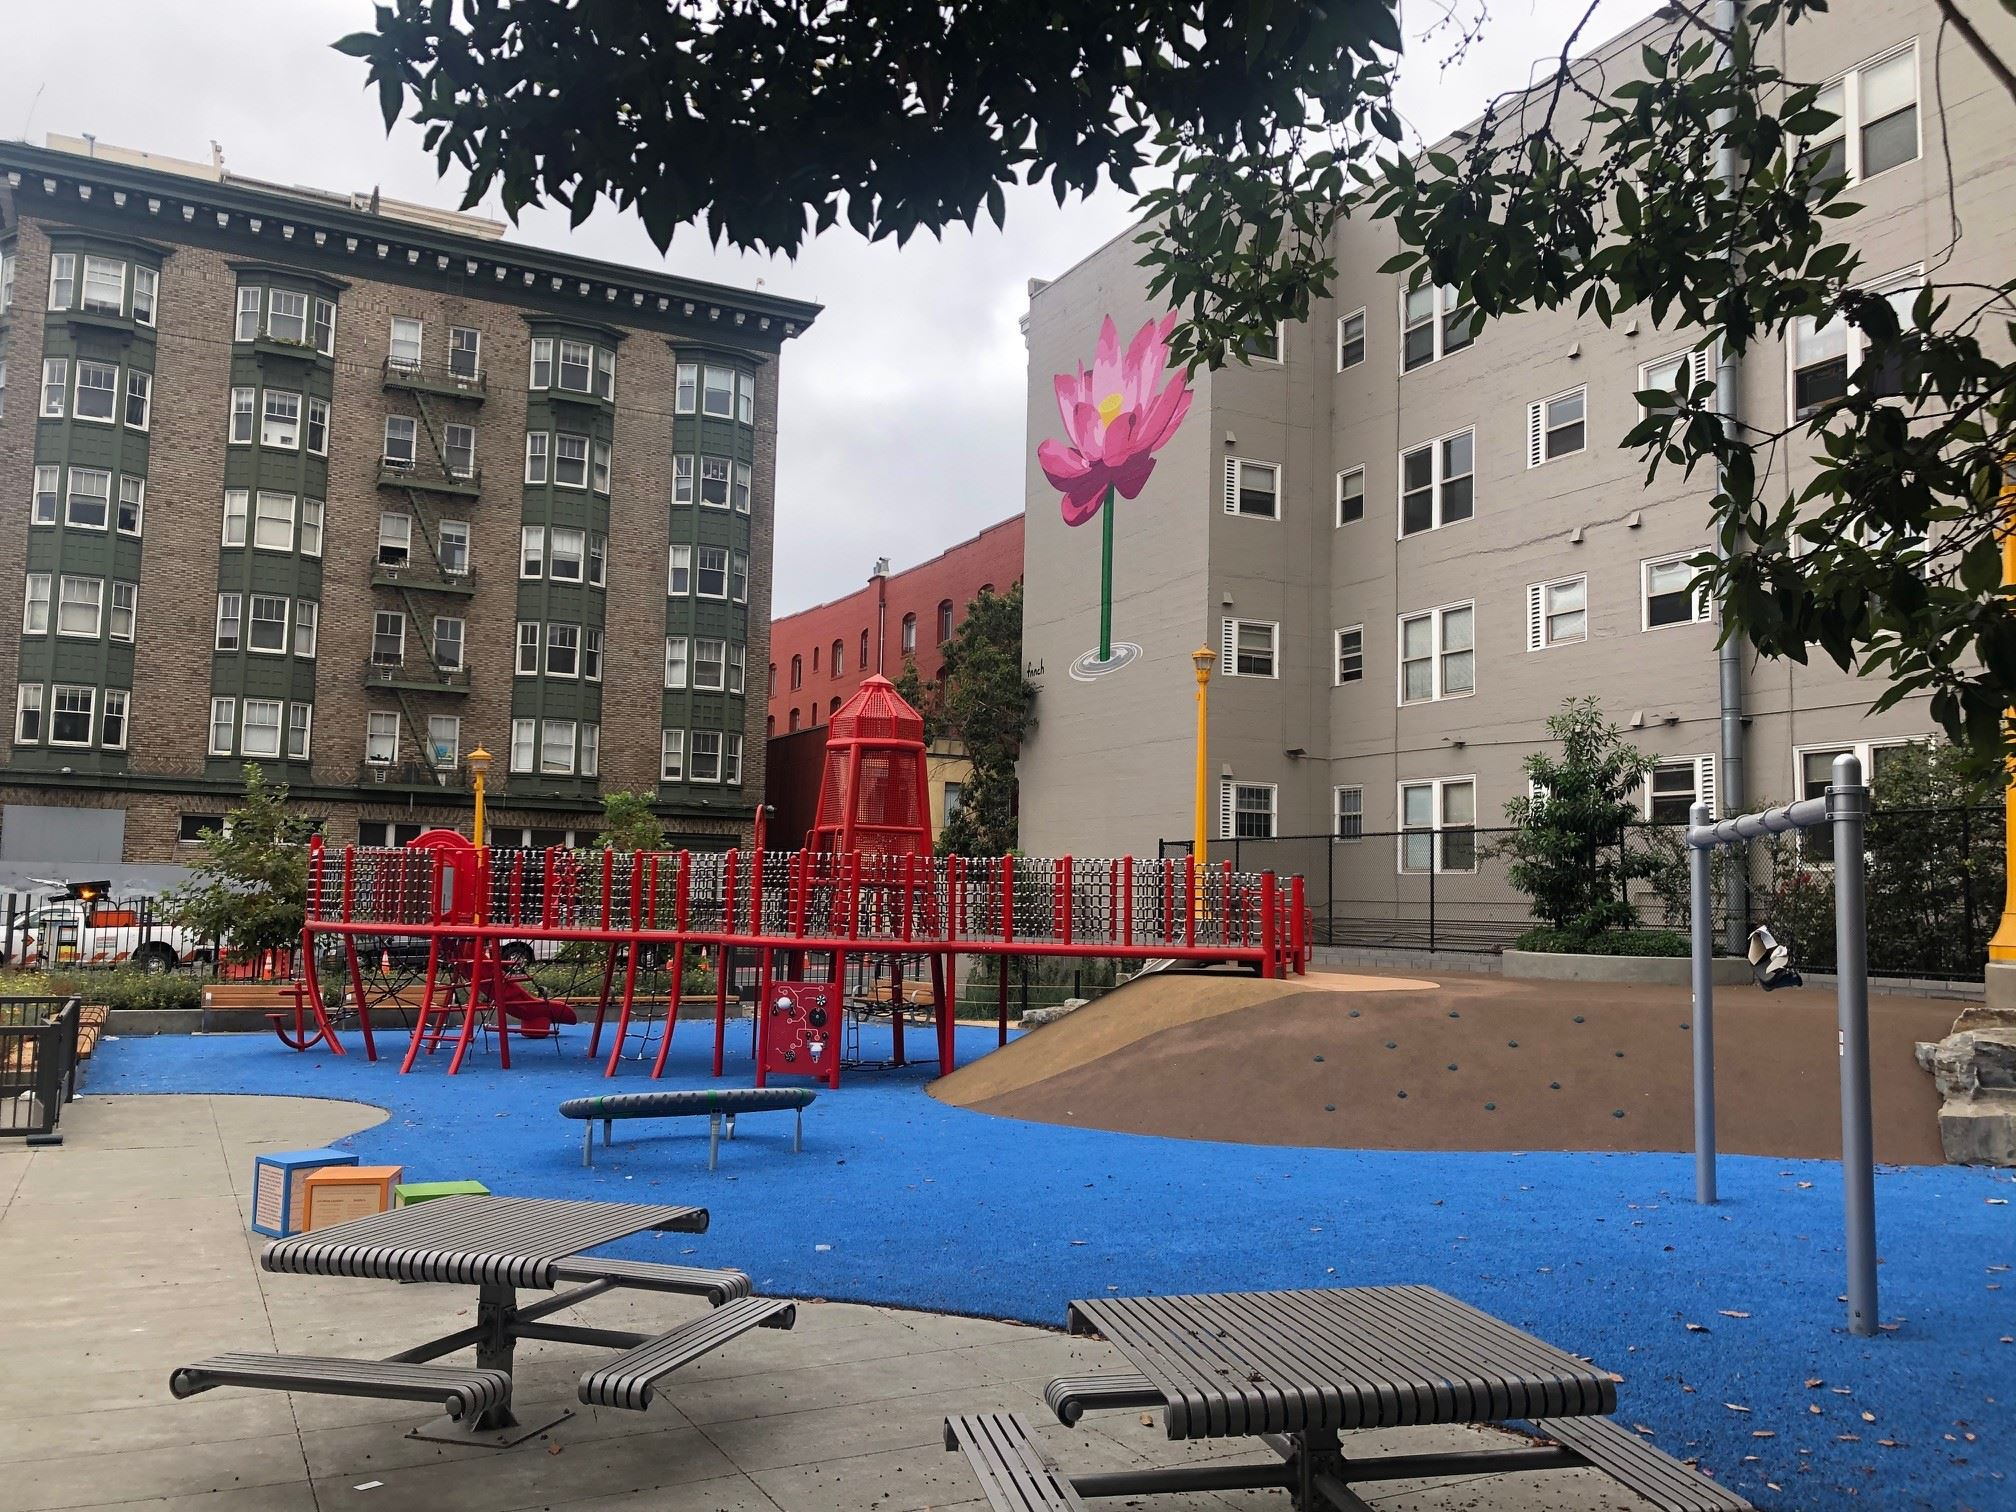 Red play structure, blue play surface, silver metal picnic tables, pink painted flower